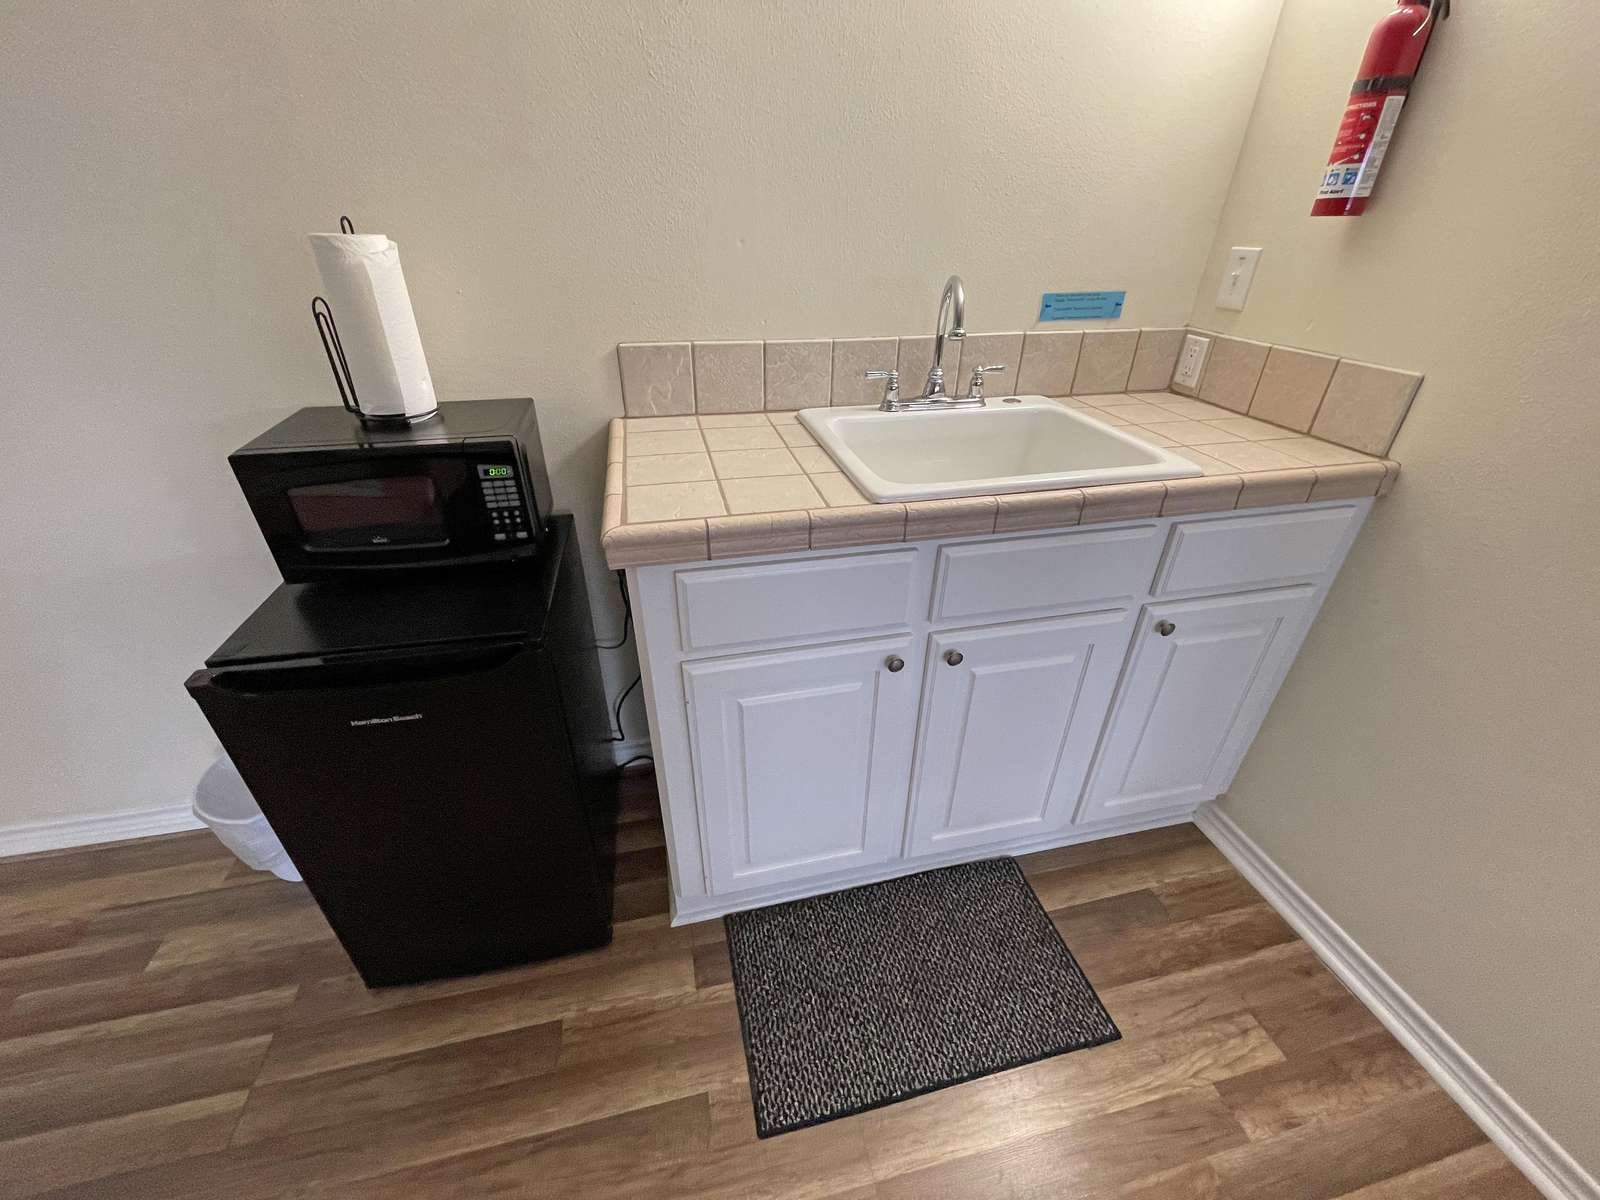 The Small Fridge and microwave are great for the kids to use while enjoying the upstairs gameroom.